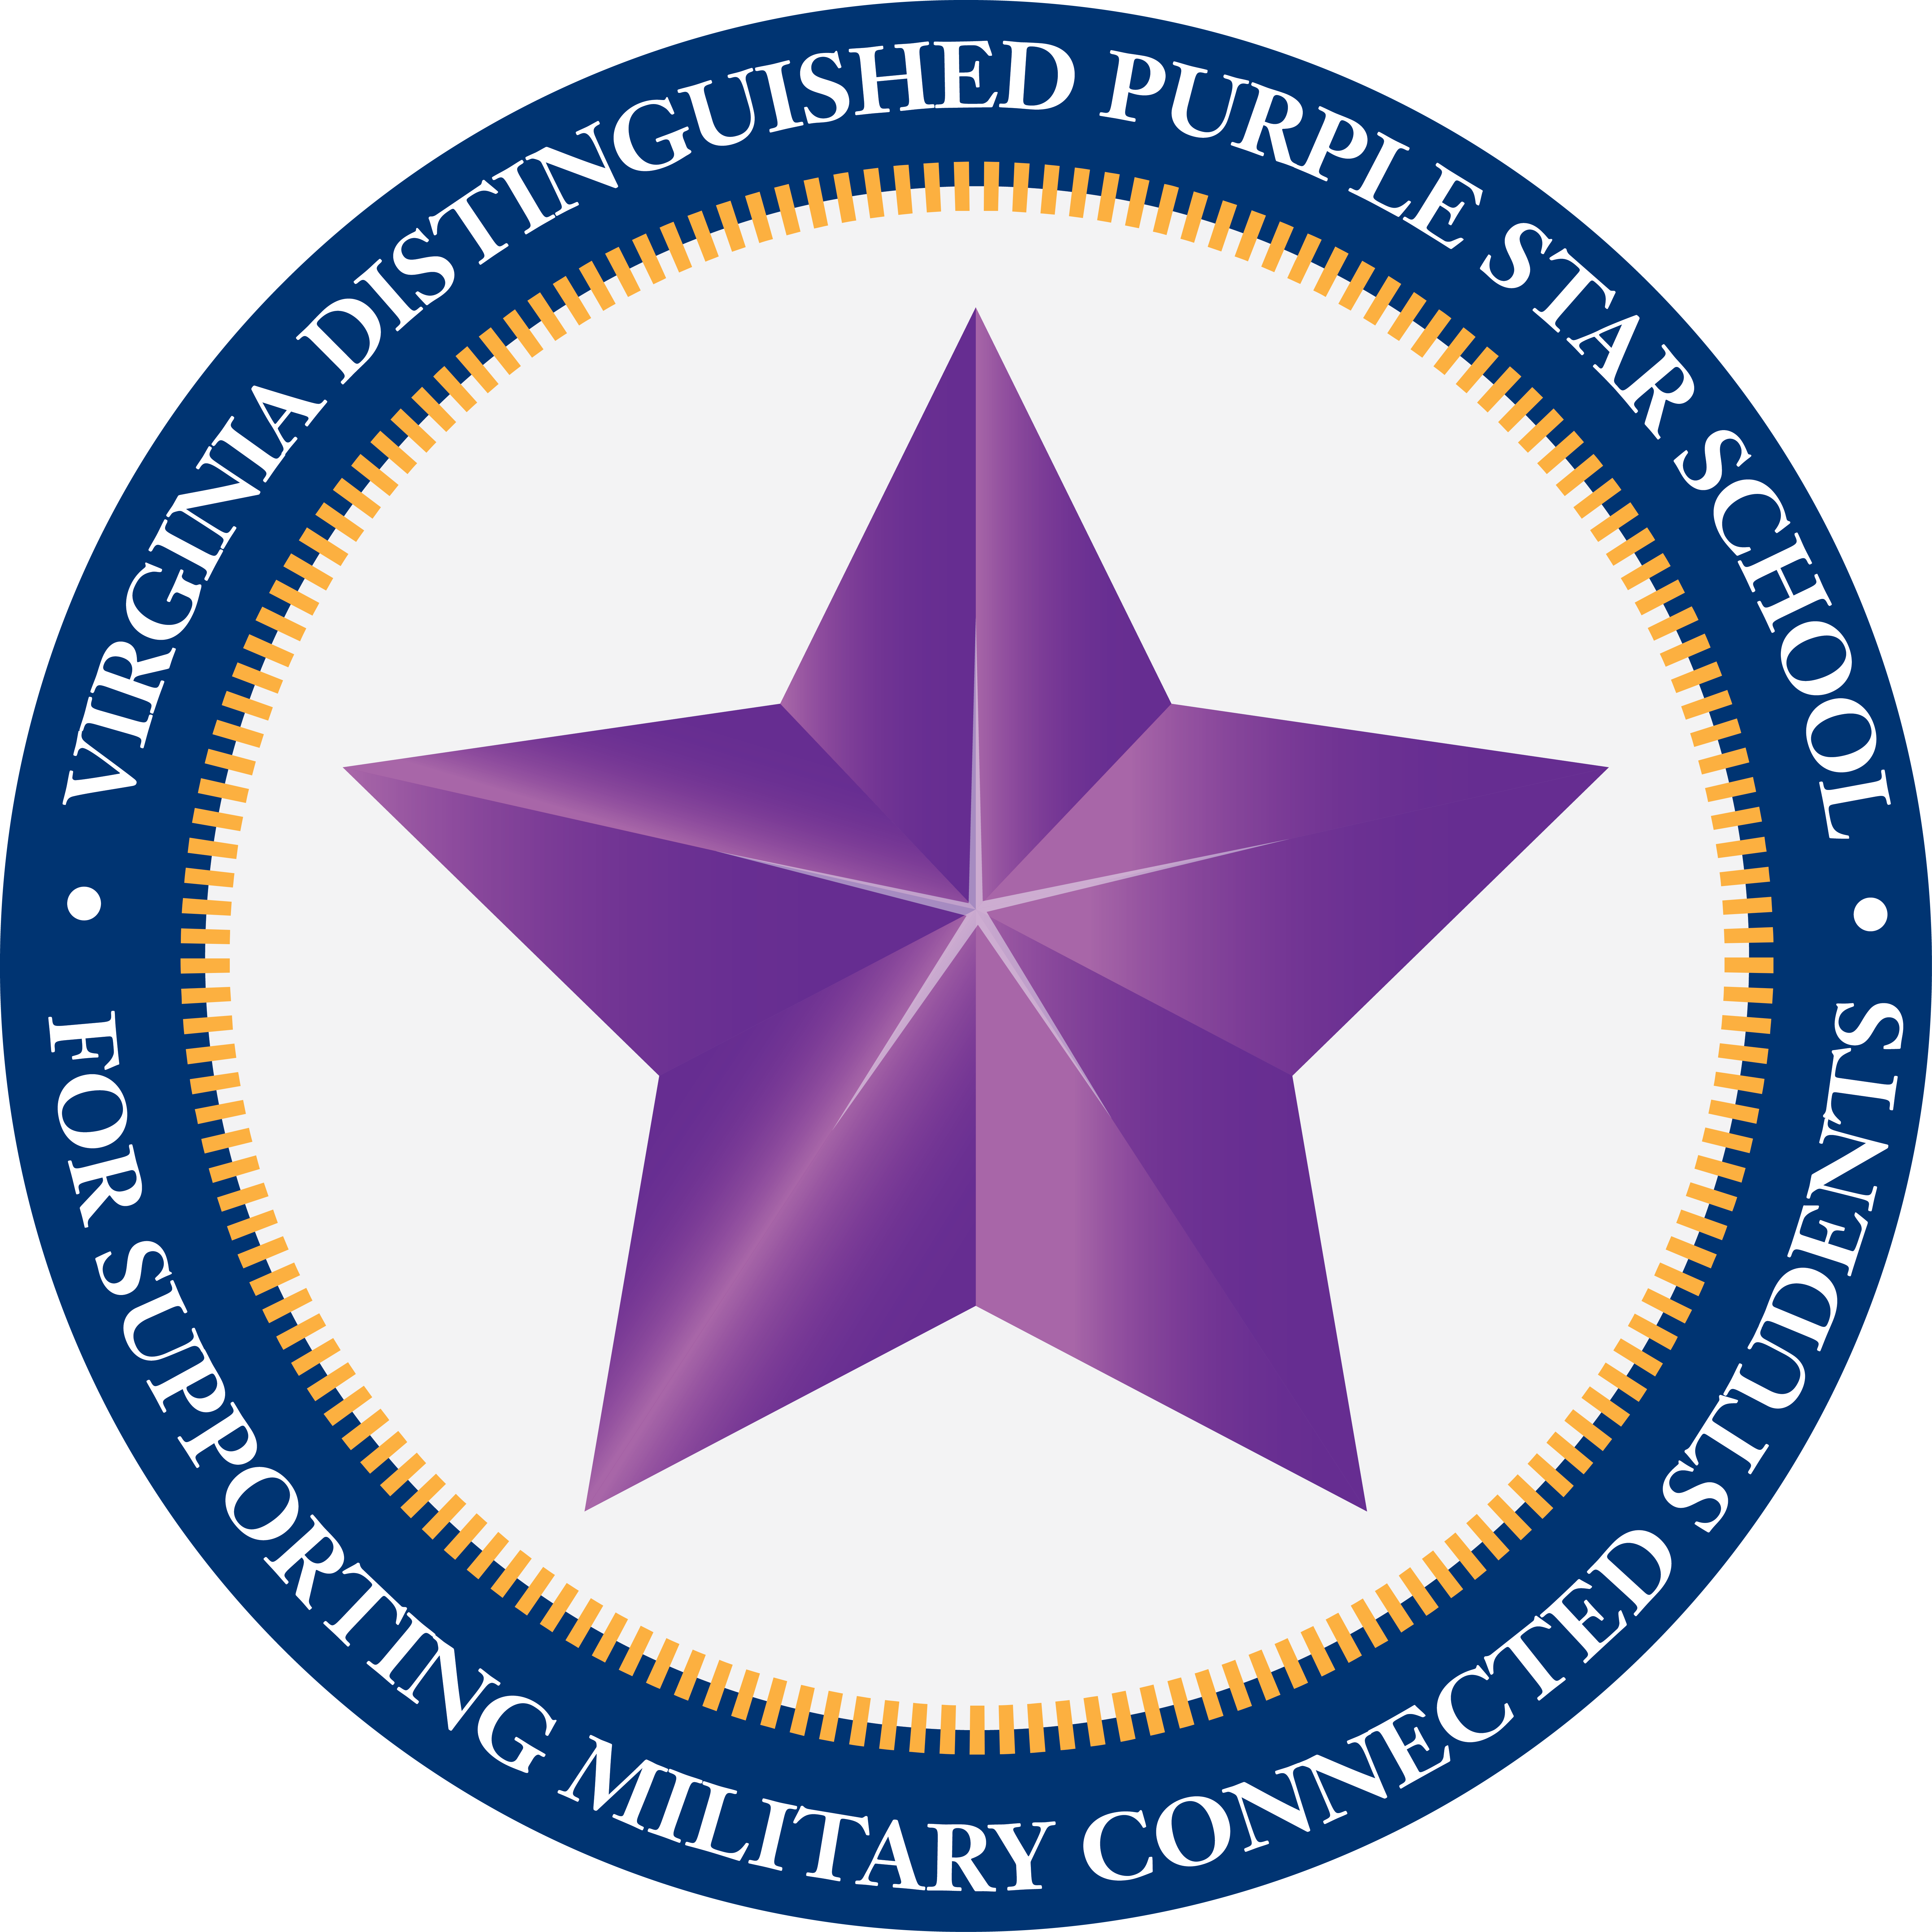 Virginia distinguished Purple Star School for supporting military connected students